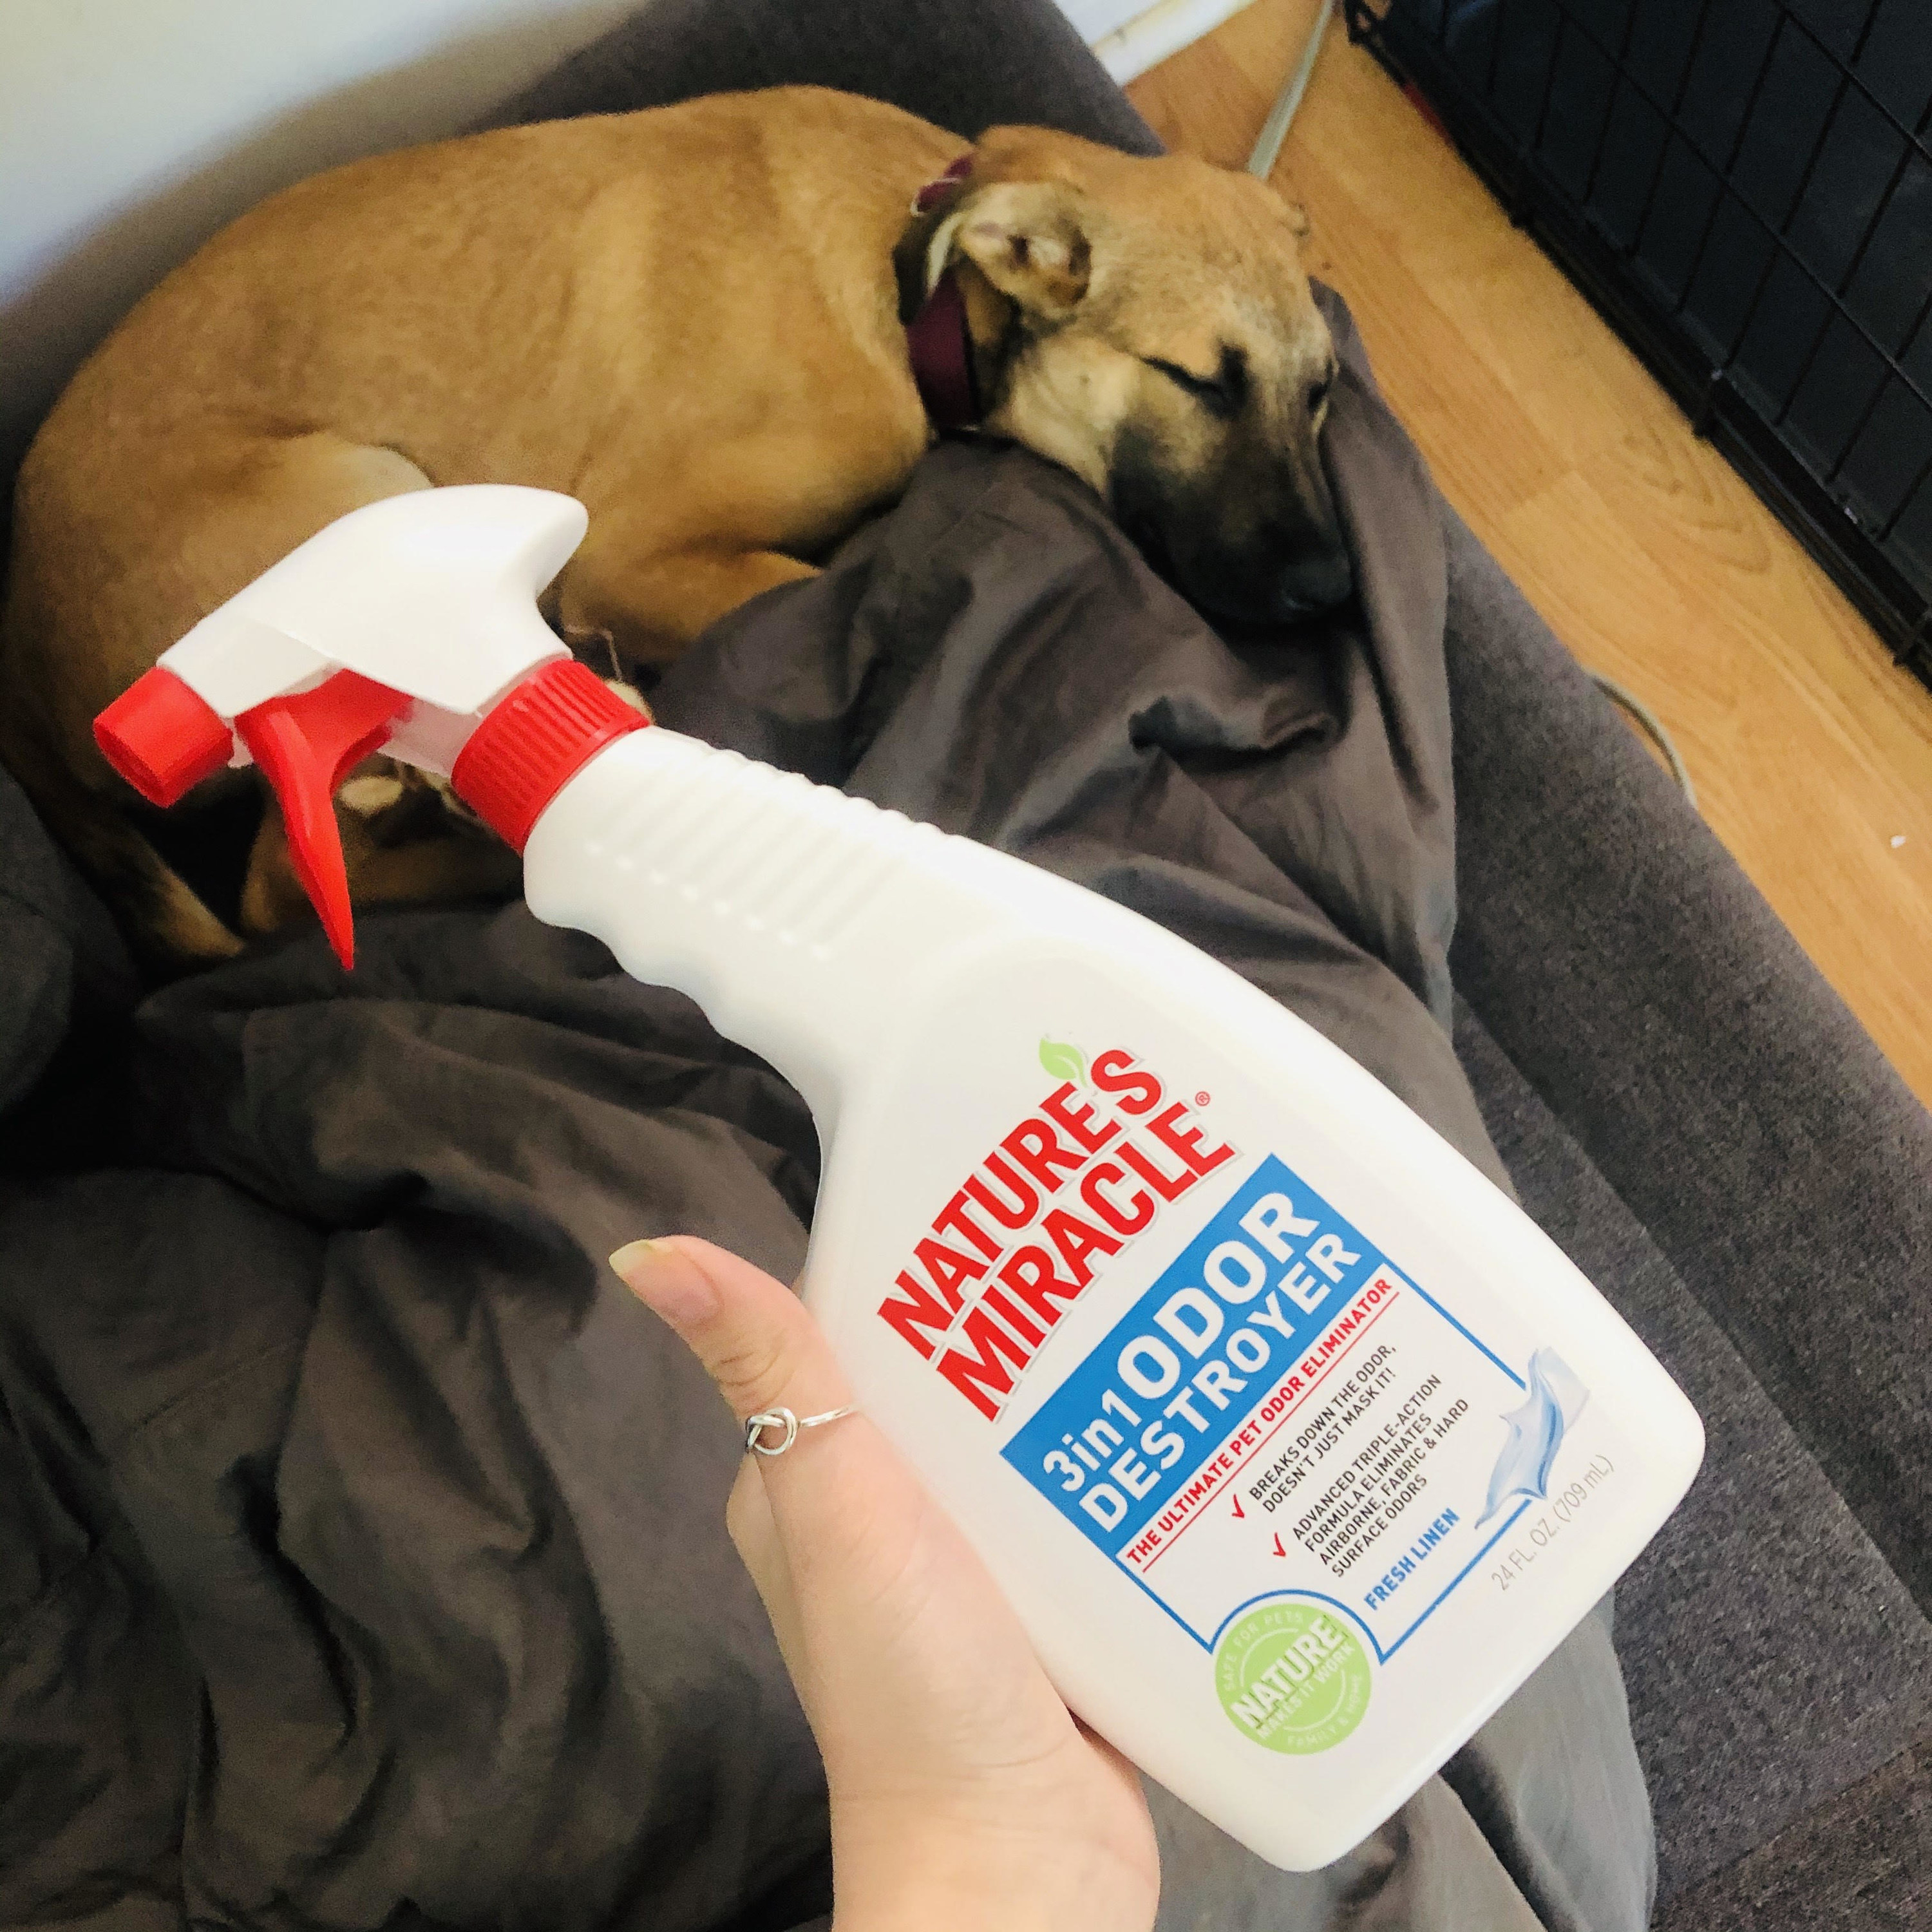 A bottle of odor destroyer being held up in front of a sleeping puppy